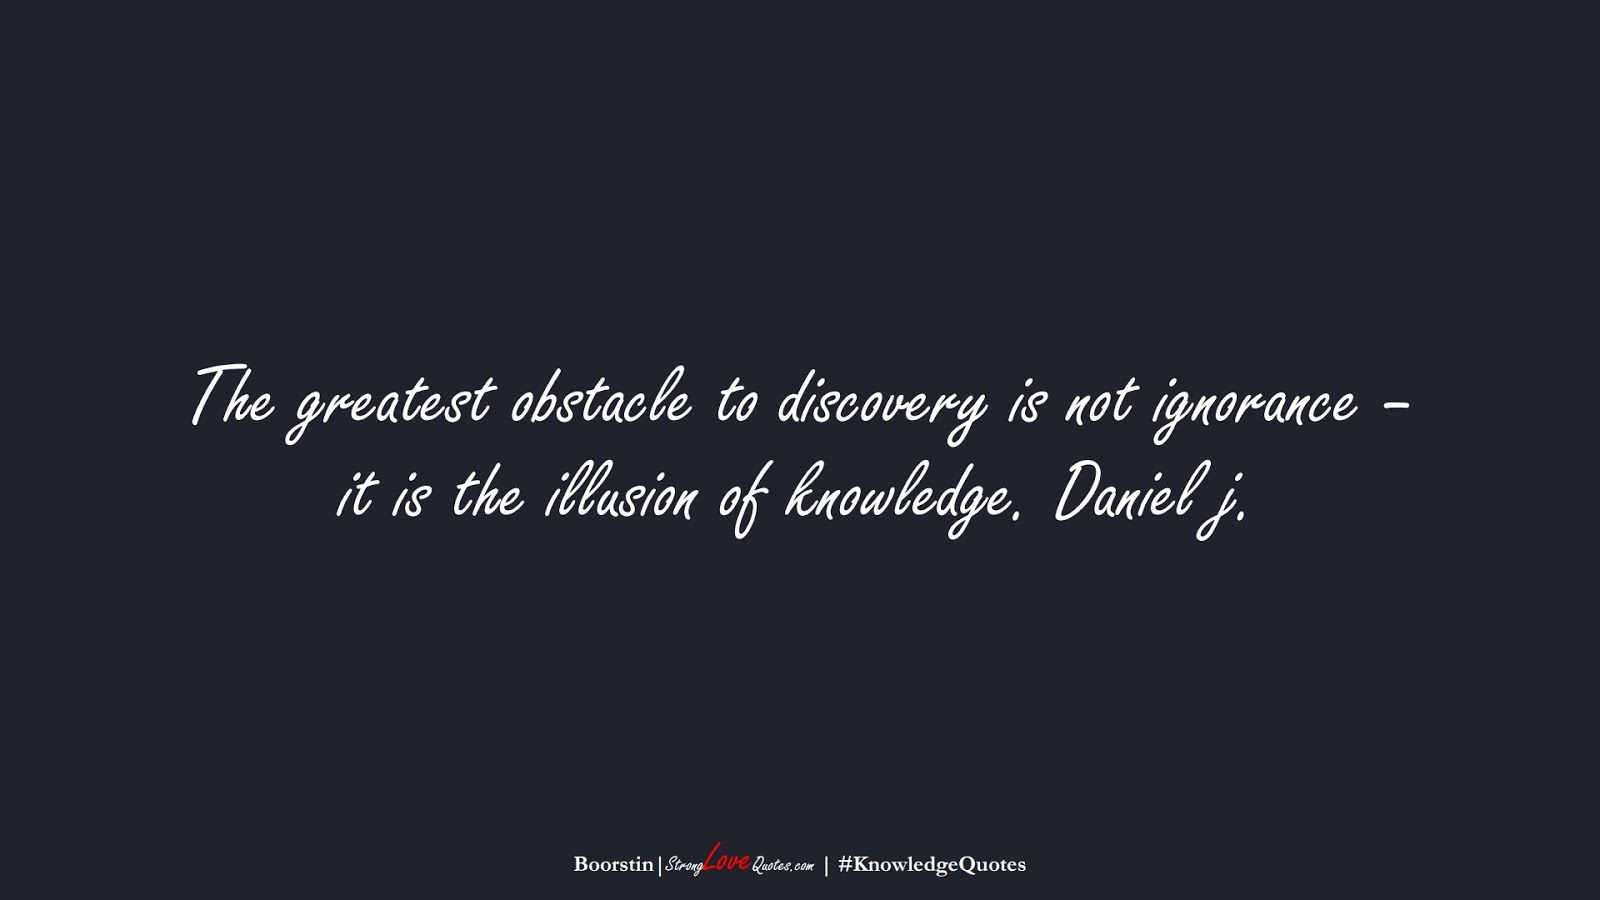 The greatest obstacle to discovery is not ignorance – it is the illusion of knowledge. Daniel j. (Boorstin);  #KnowledgeQuotes